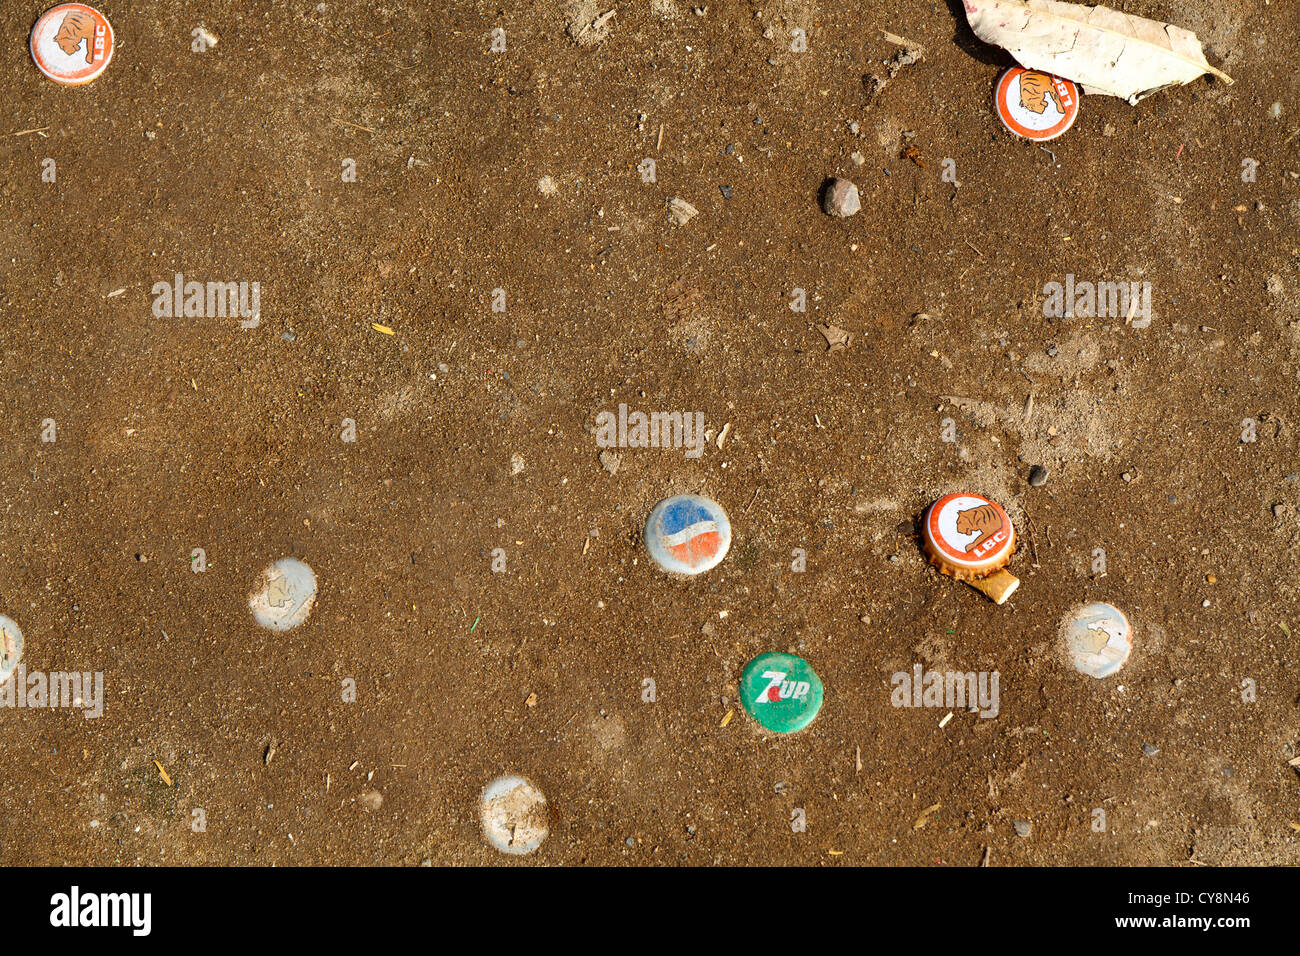 Colorful Crown Caps in the Sand in Vientiane, Laos - Stock Image